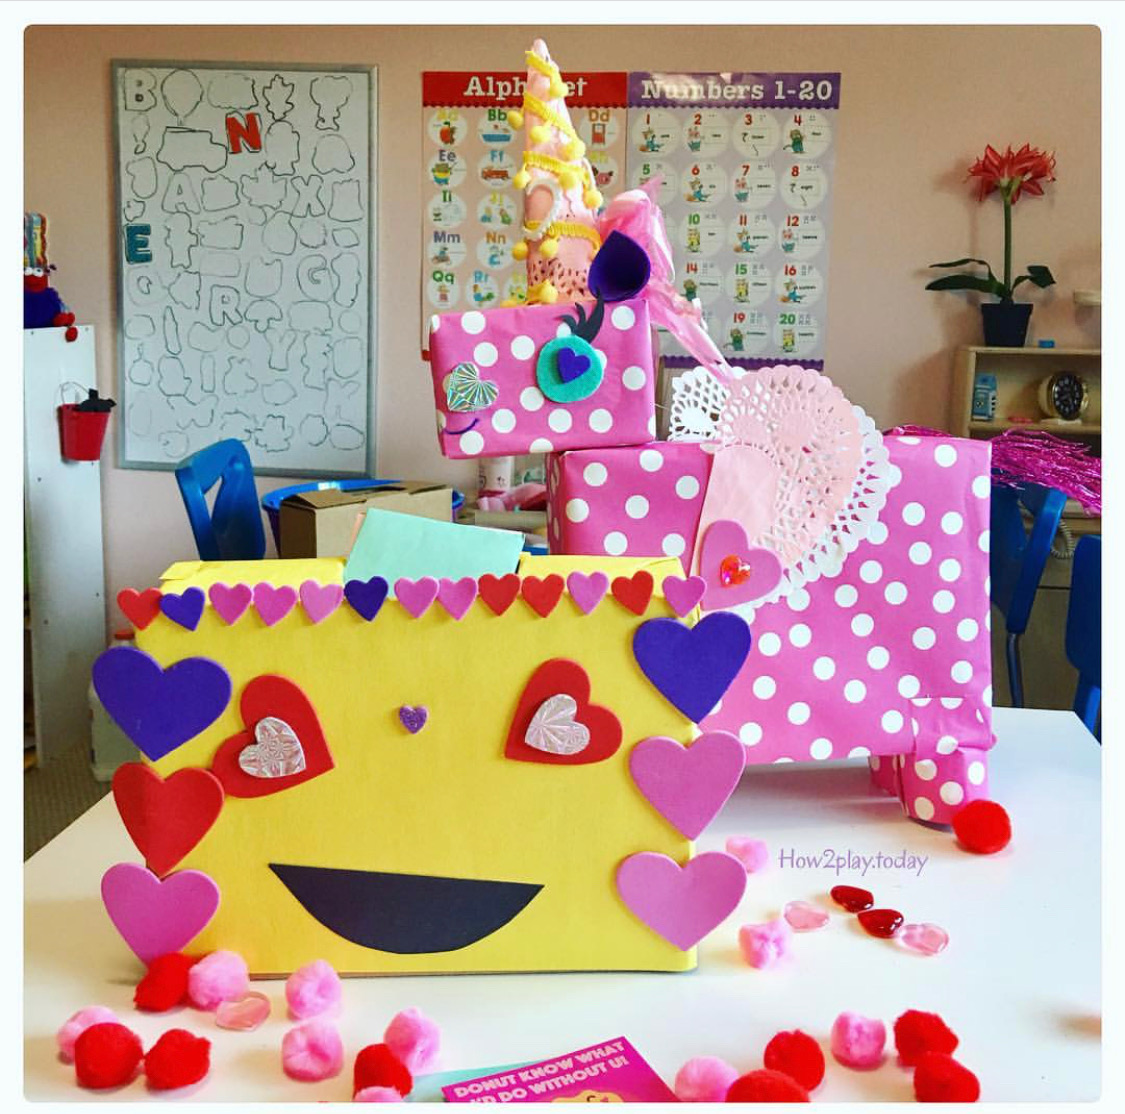 Valentine Boxes: Recycle some small boxes from around your home, cover with wrapping or construction paper, add some fun stickers, ribbon or yarn and you've got yourself some bright and colorful DIY Valentine boxes